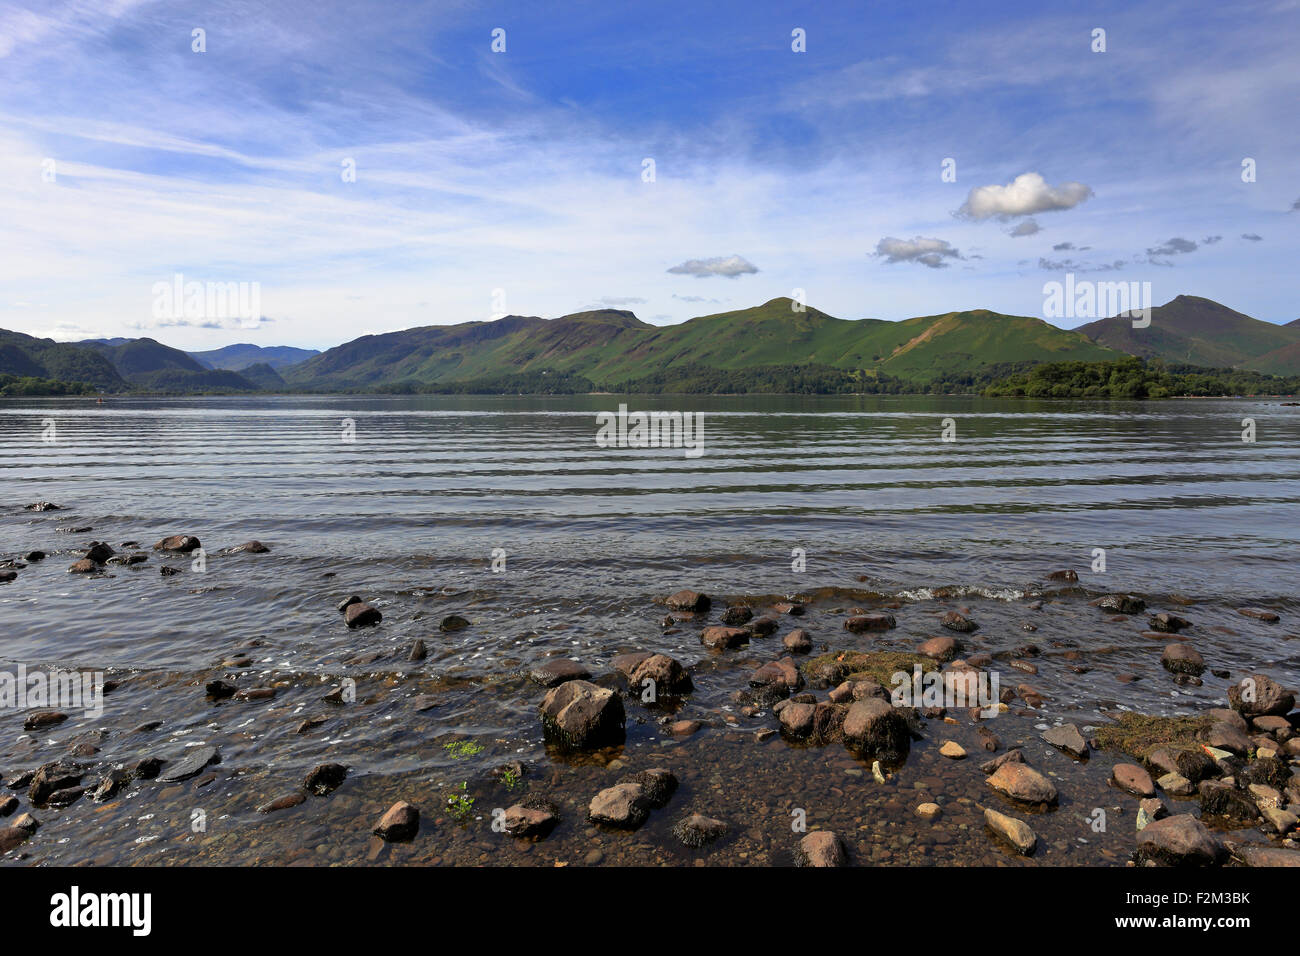 Catbells across Dewent Water from Calfclose Bay, Cumbria, Lake District National Park, England, UK. - Stock Image